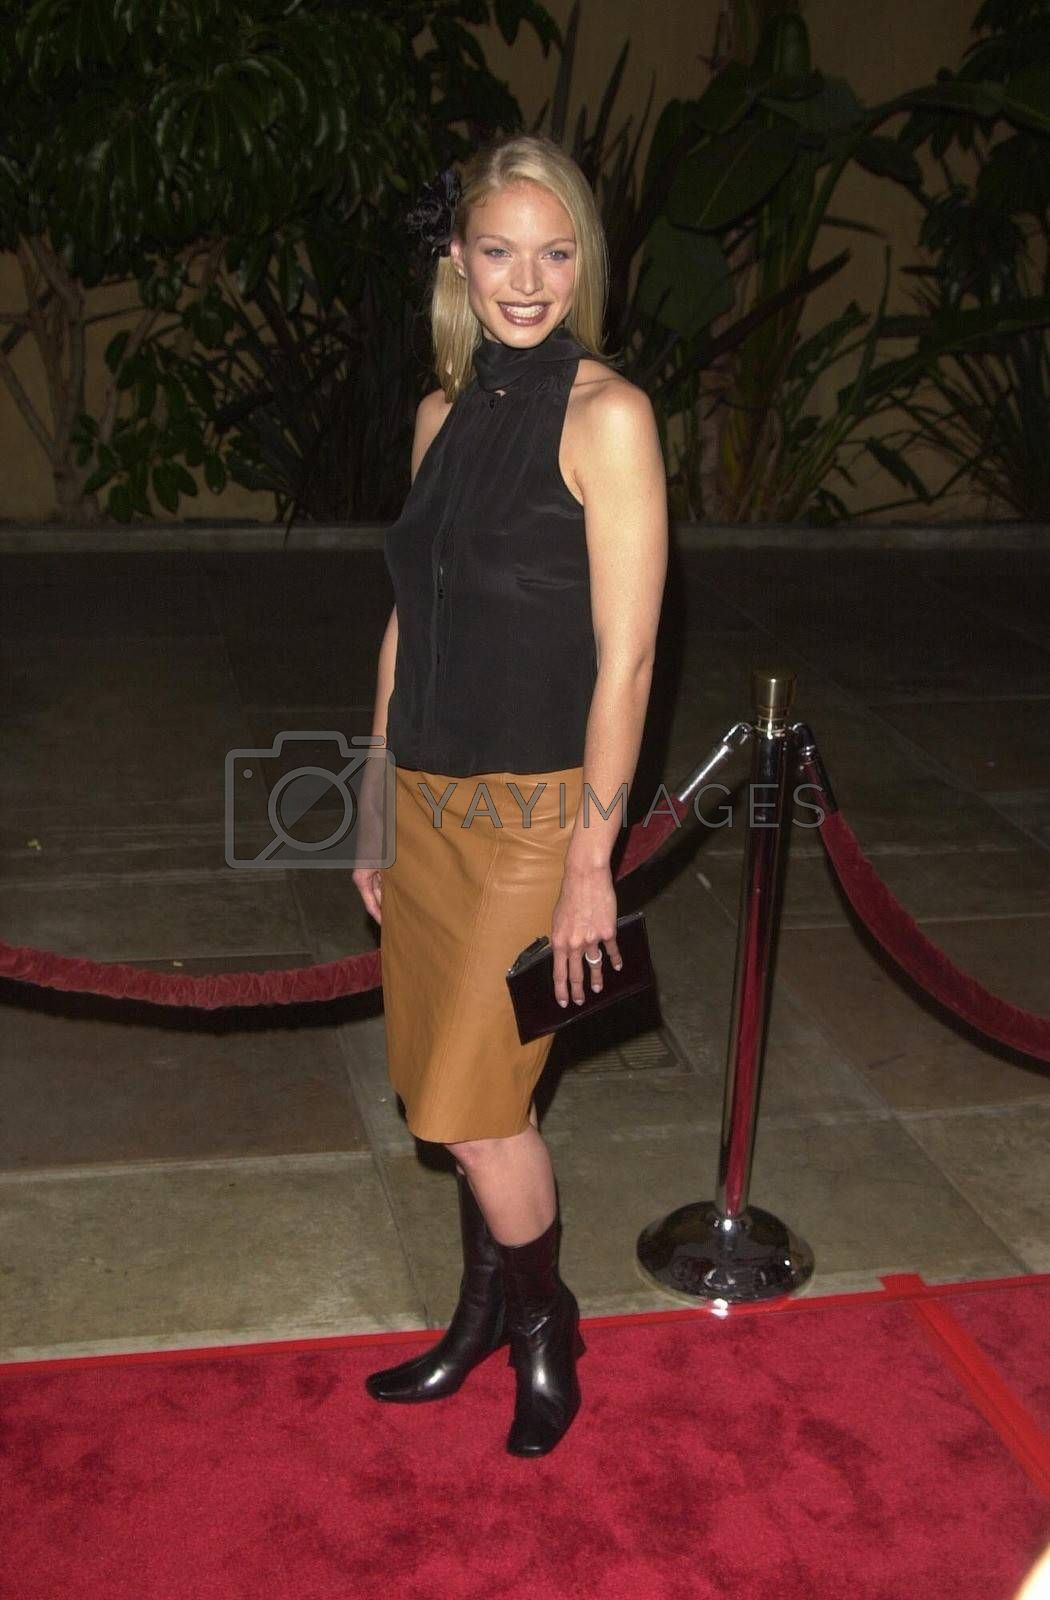 Kristin Lehman at the premiere of The Way Of The Gun in Hollywood. 08-29-00